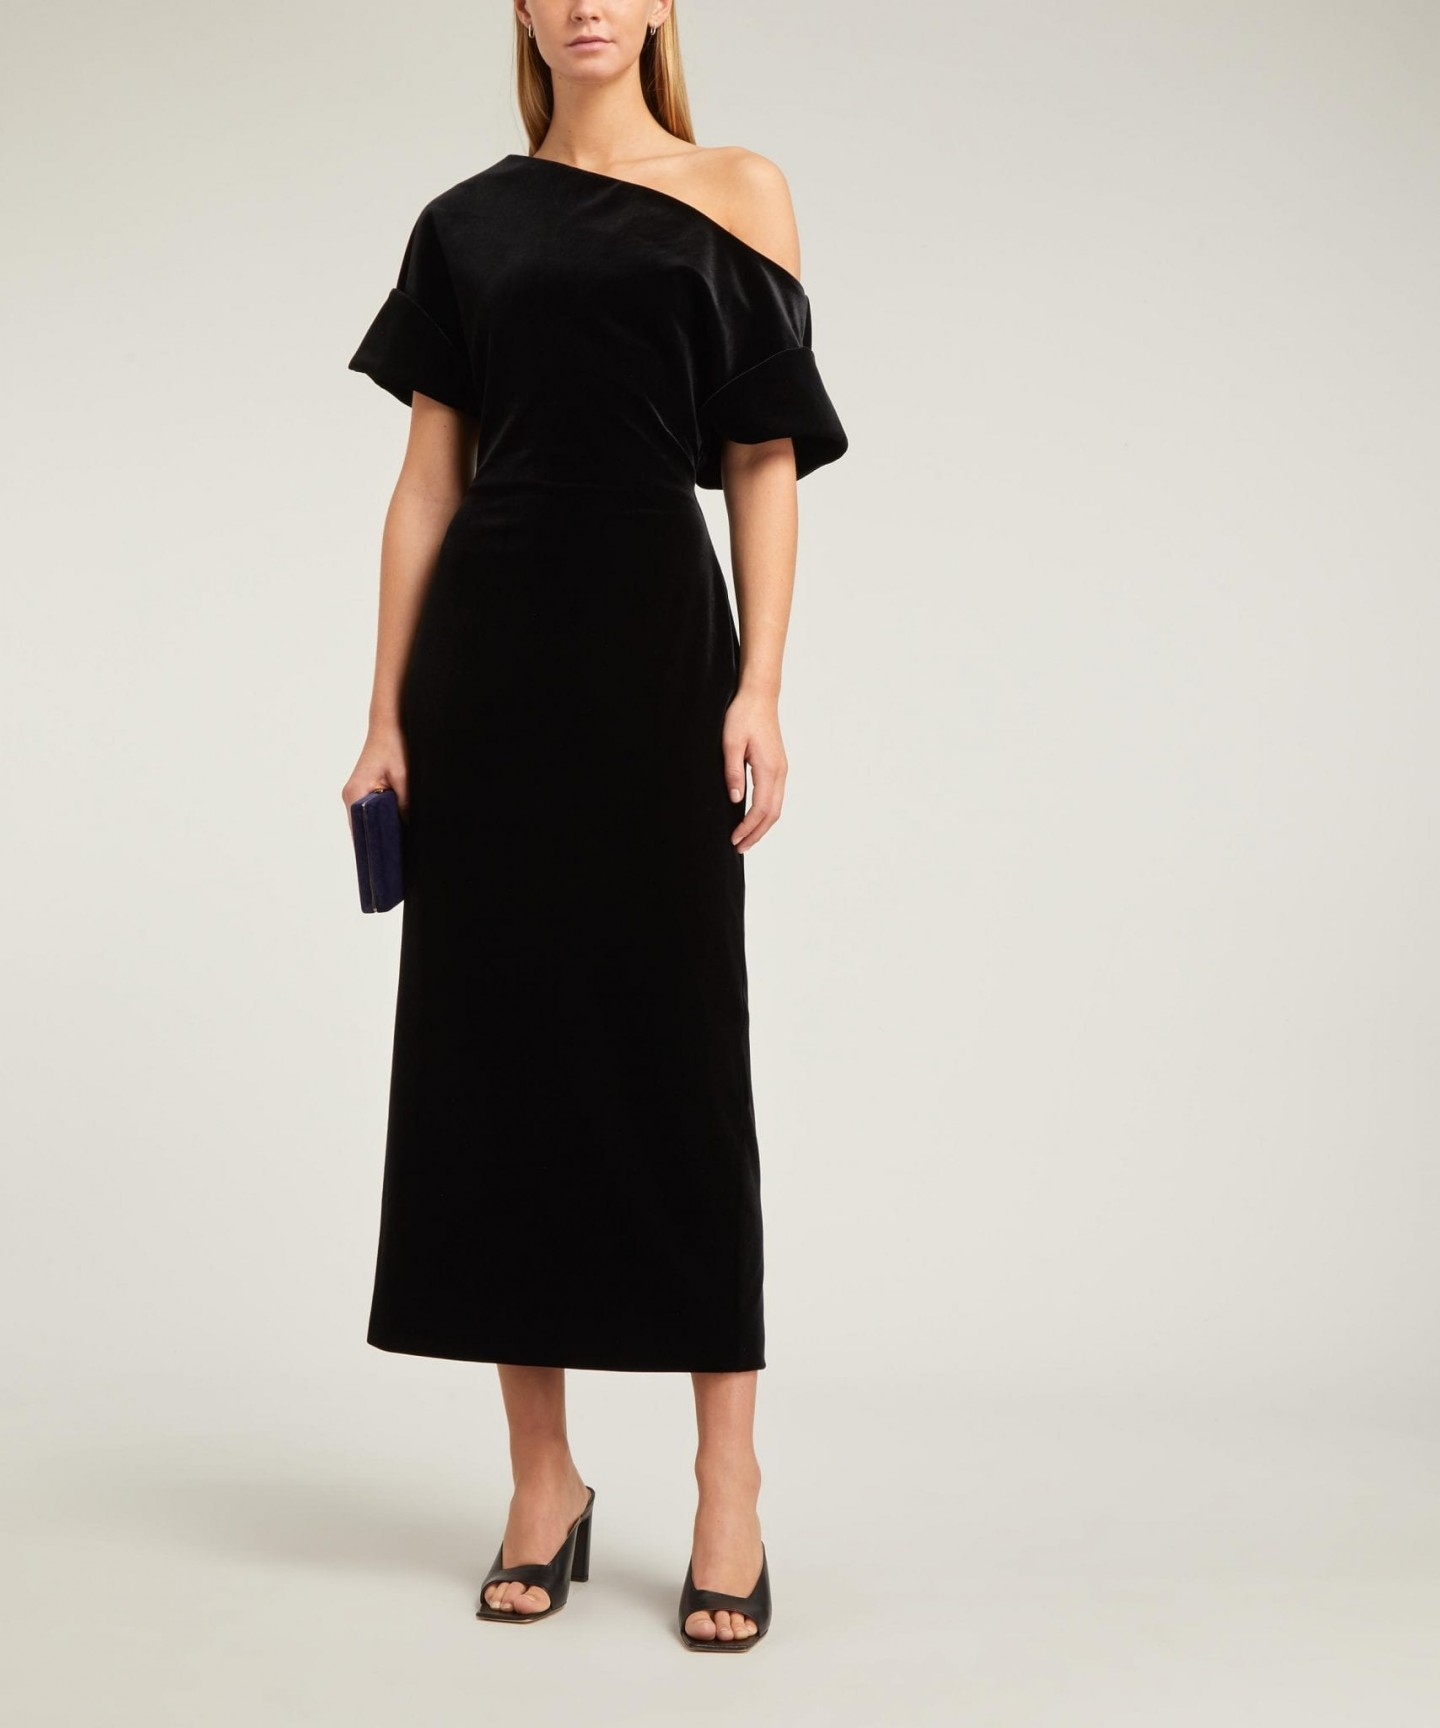 CHRISTOPHER KANE Asymmetric Stretch-Velvet Dress